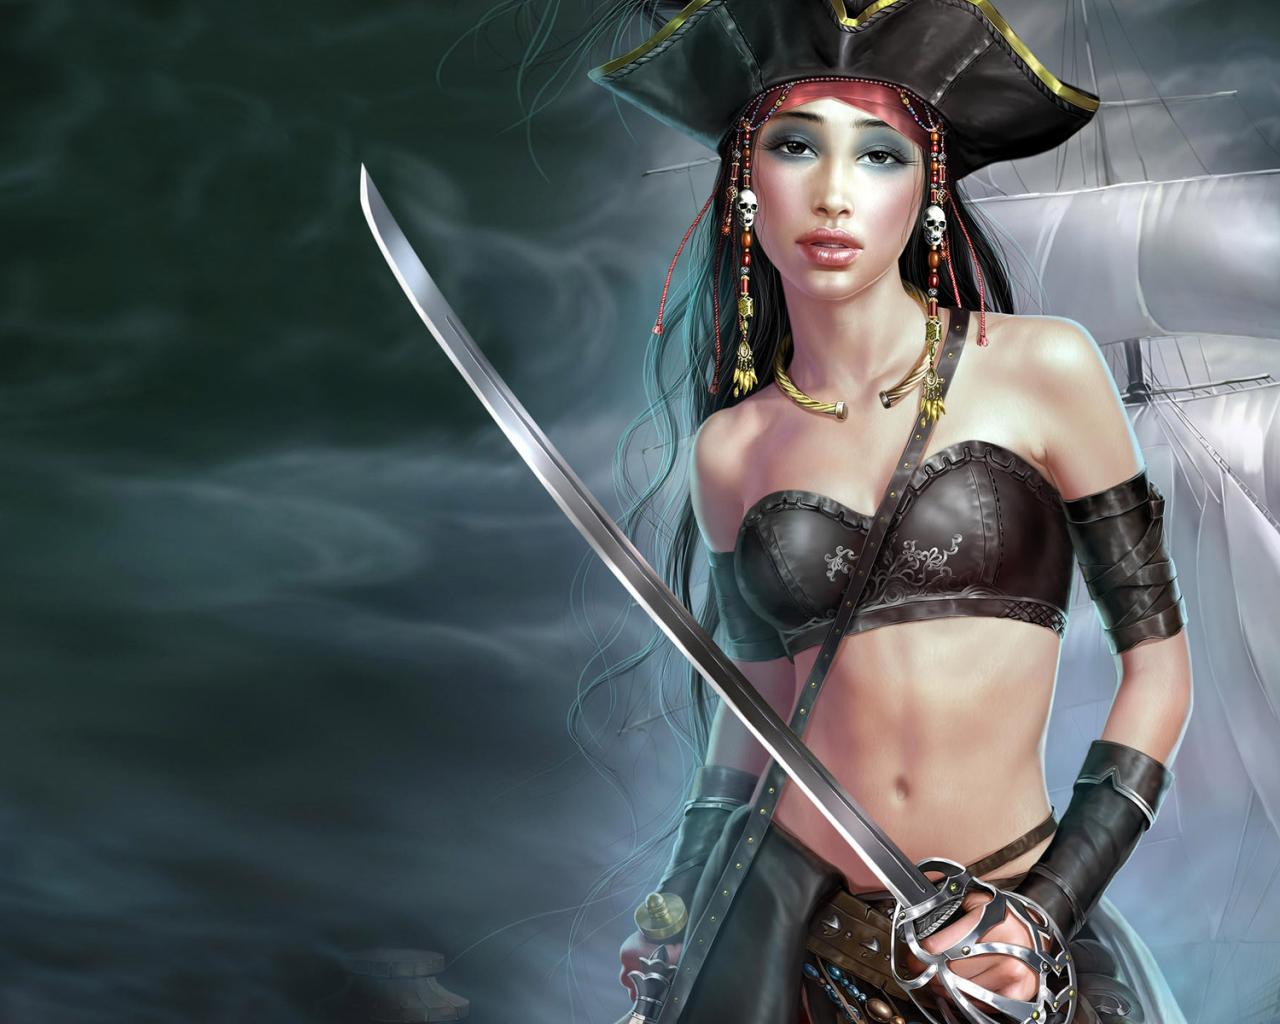 Female pirates images sexy movies